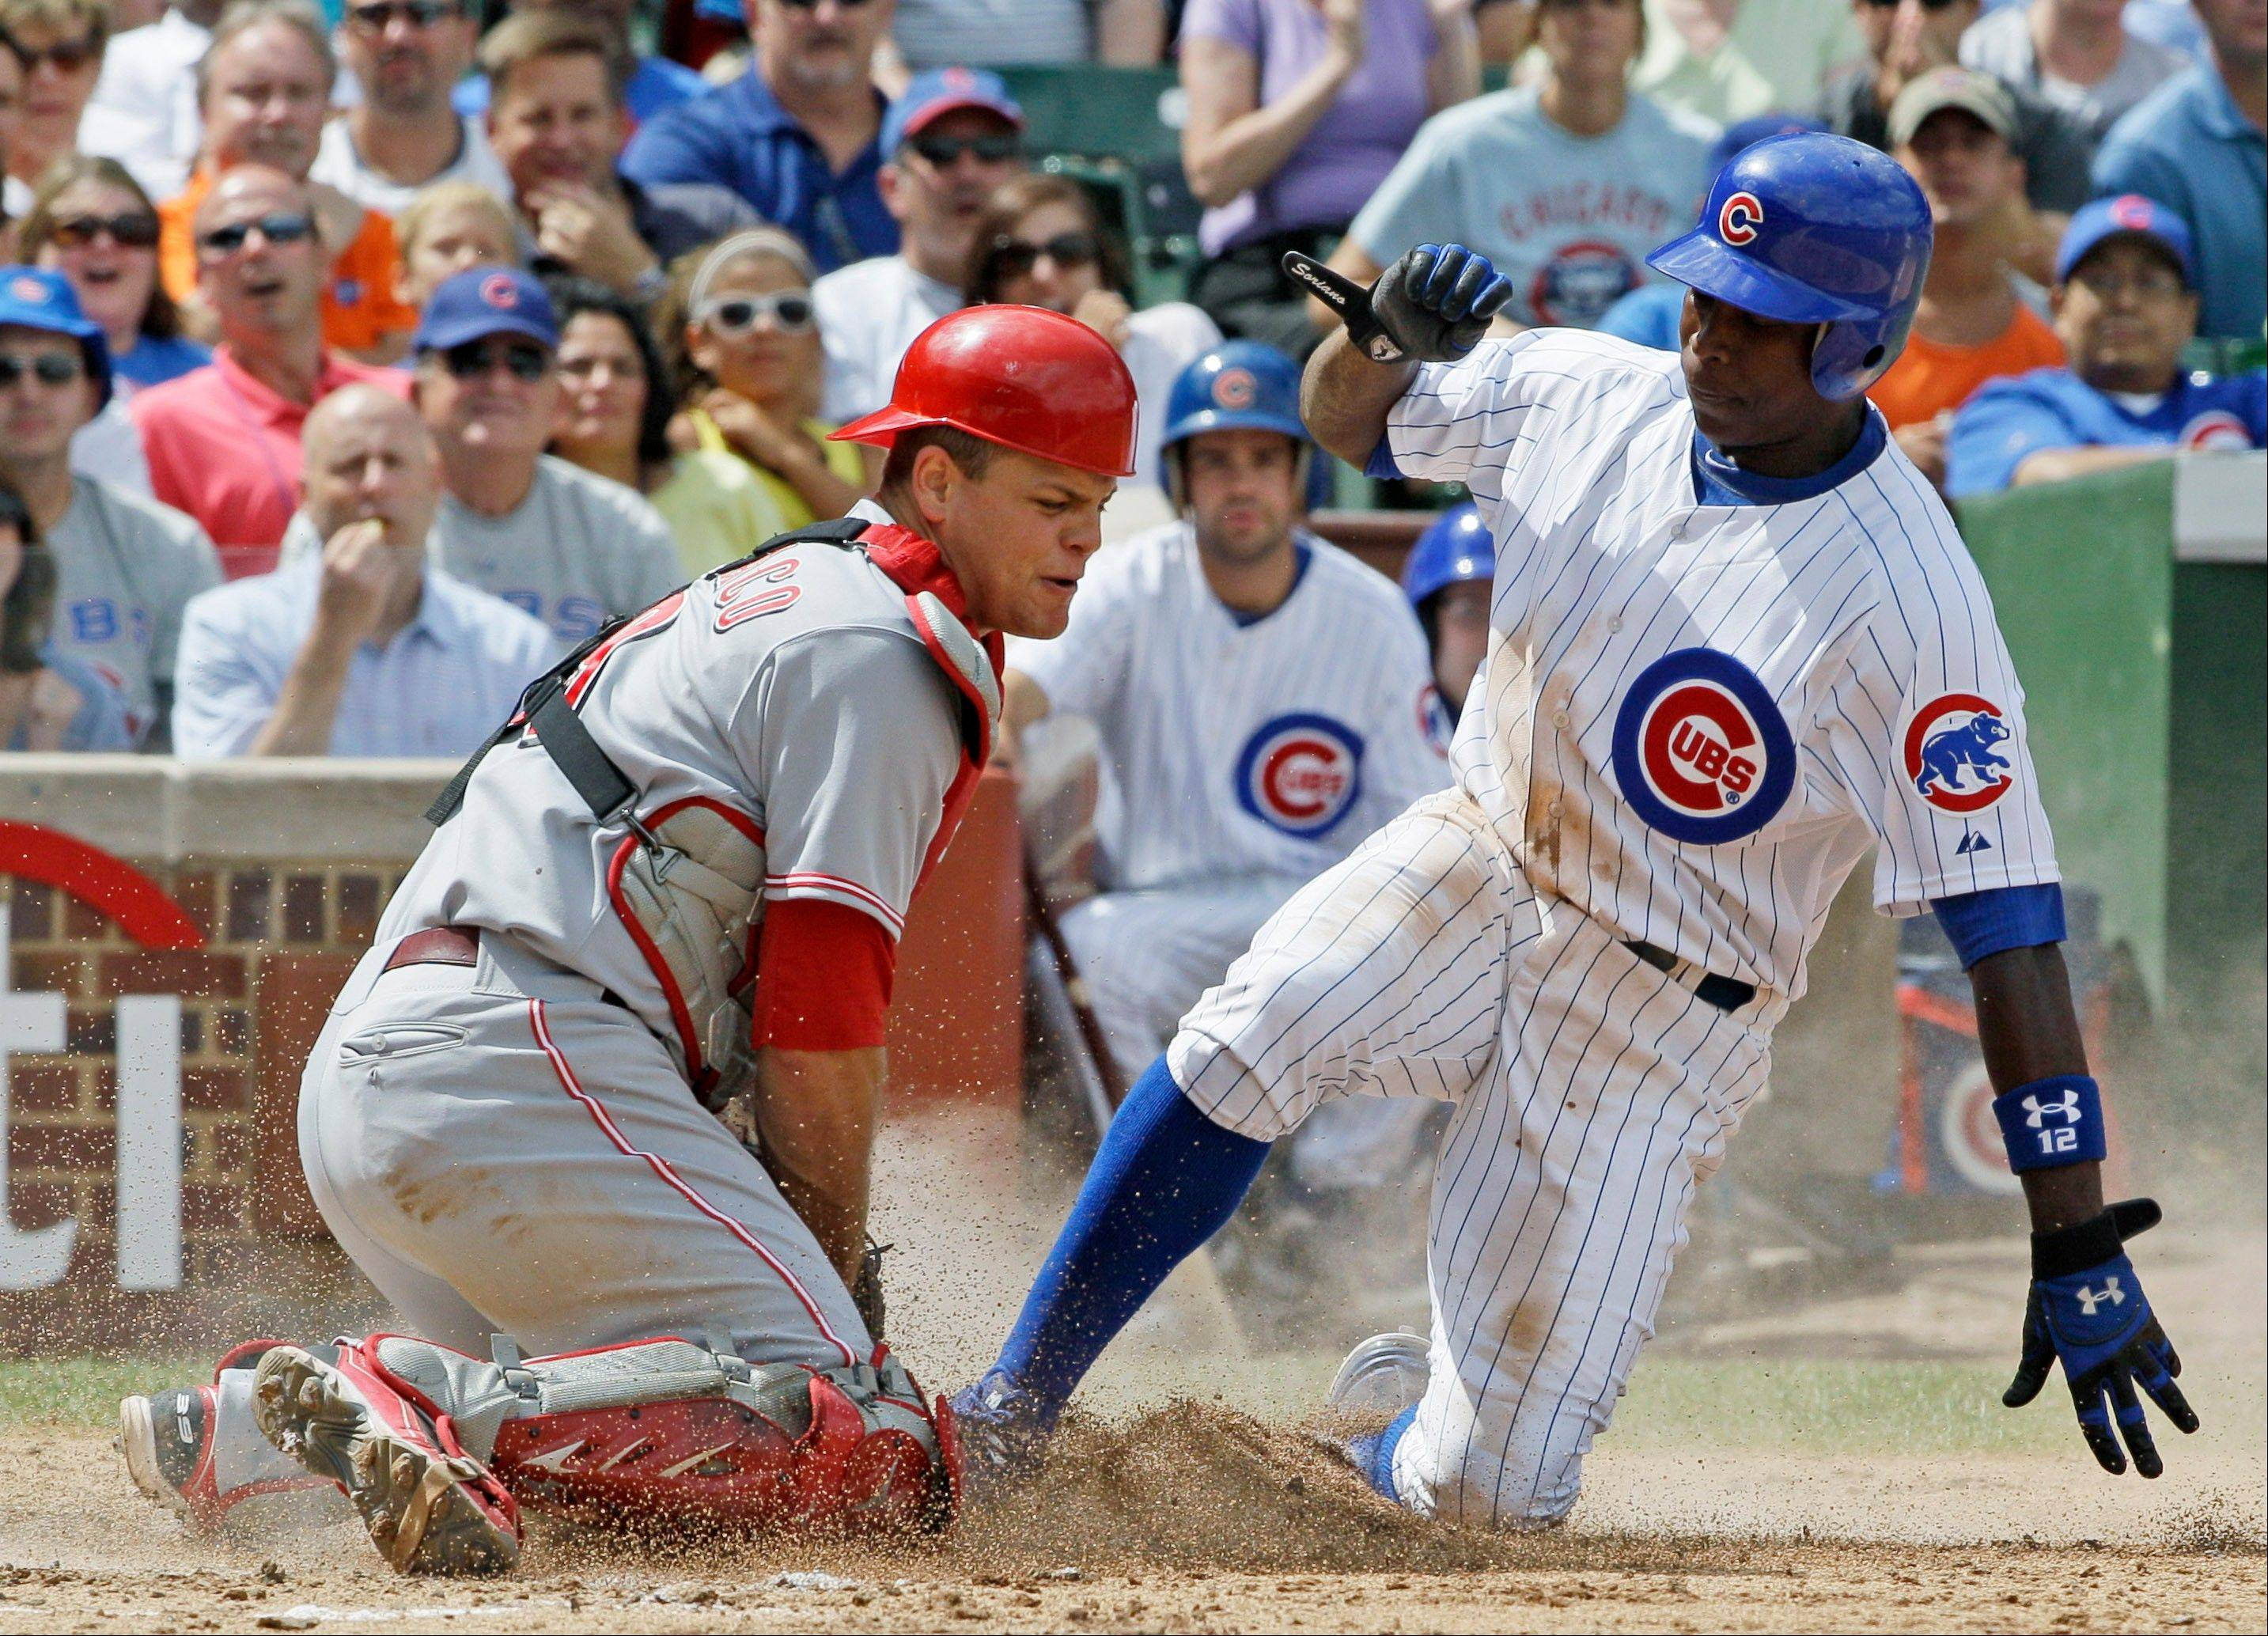 Reds catcher Devin Mesoraco, left, tags out Alfonso Soriano during the third inning of the Cubs' 10-8 loss to Cincinnati on Friday at Wrigley Field.